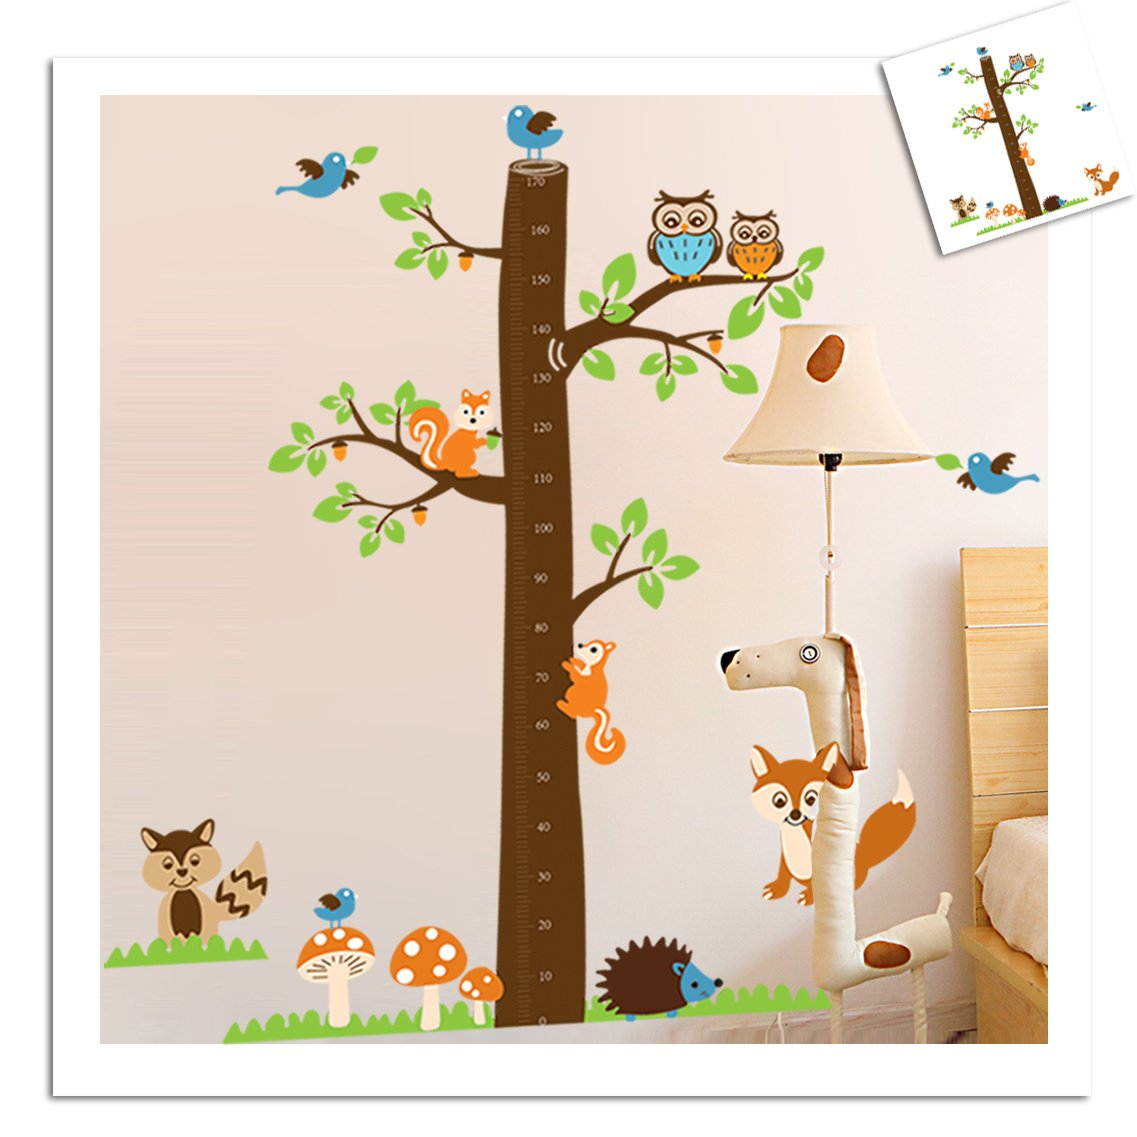 Amazon.de: Wandtattoo Wandsticker XXL Messlatte Deko Tiere Kinder ...